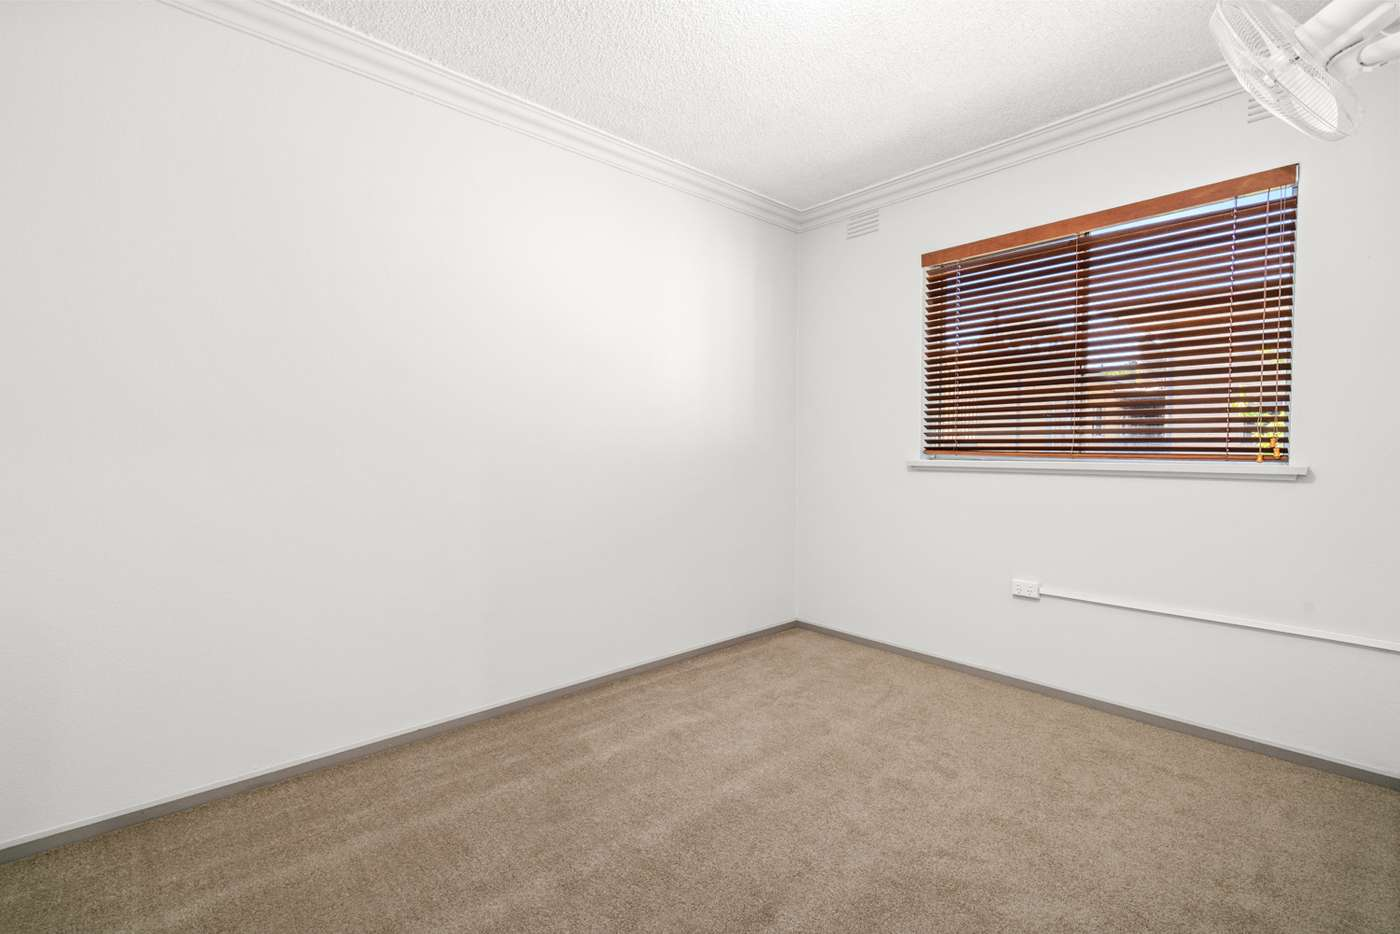 Sixth view of Homely apartment listing, 9/55 Haines Street, North Melbourne VIC 3051